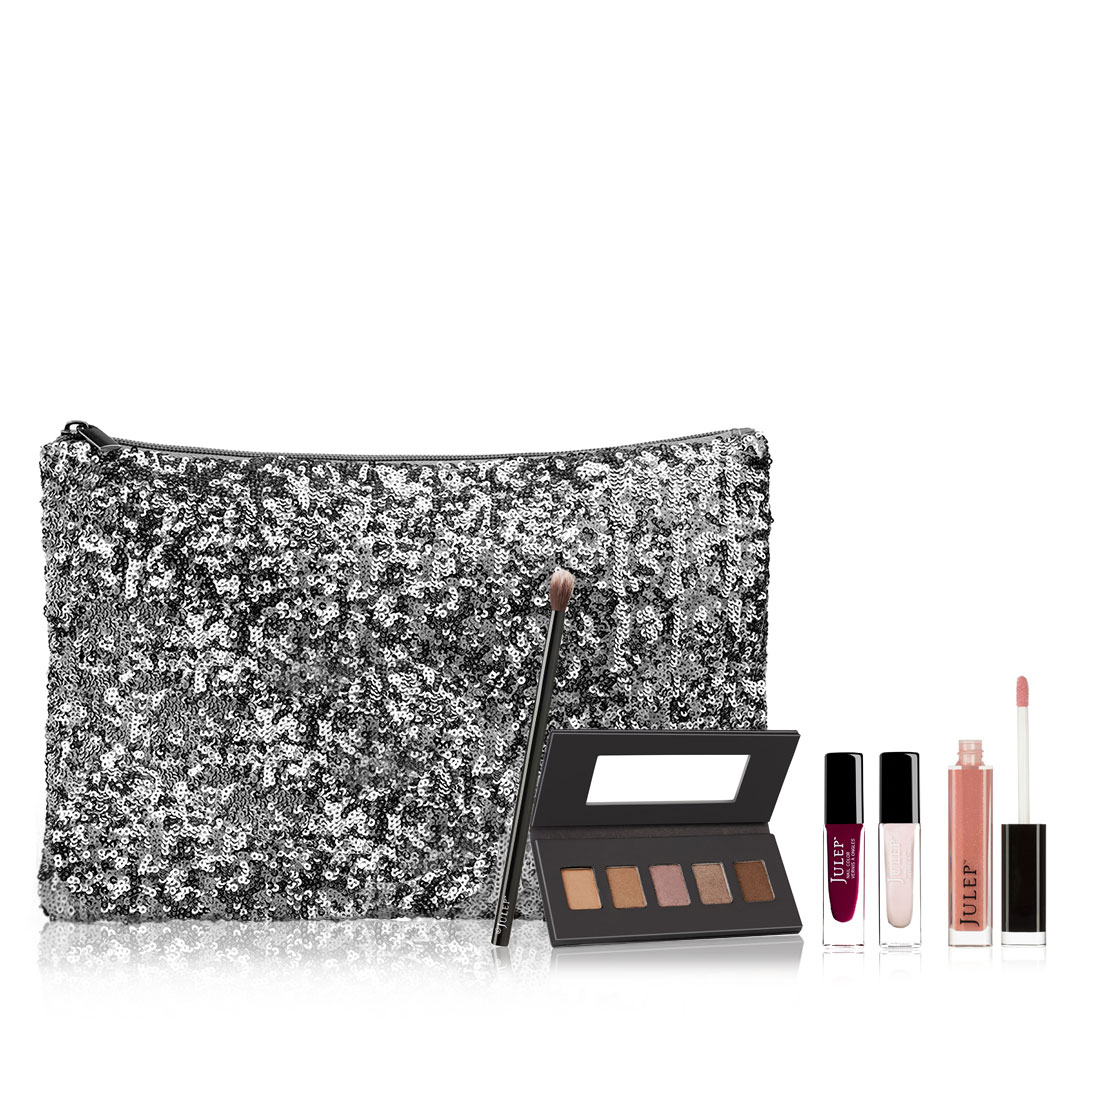 GlamGWP GunmentalSequinClutch Sweep Eyes HOT OFFER! $120 Holiday Glam Gift w/ Purchase FREE with $35 or more